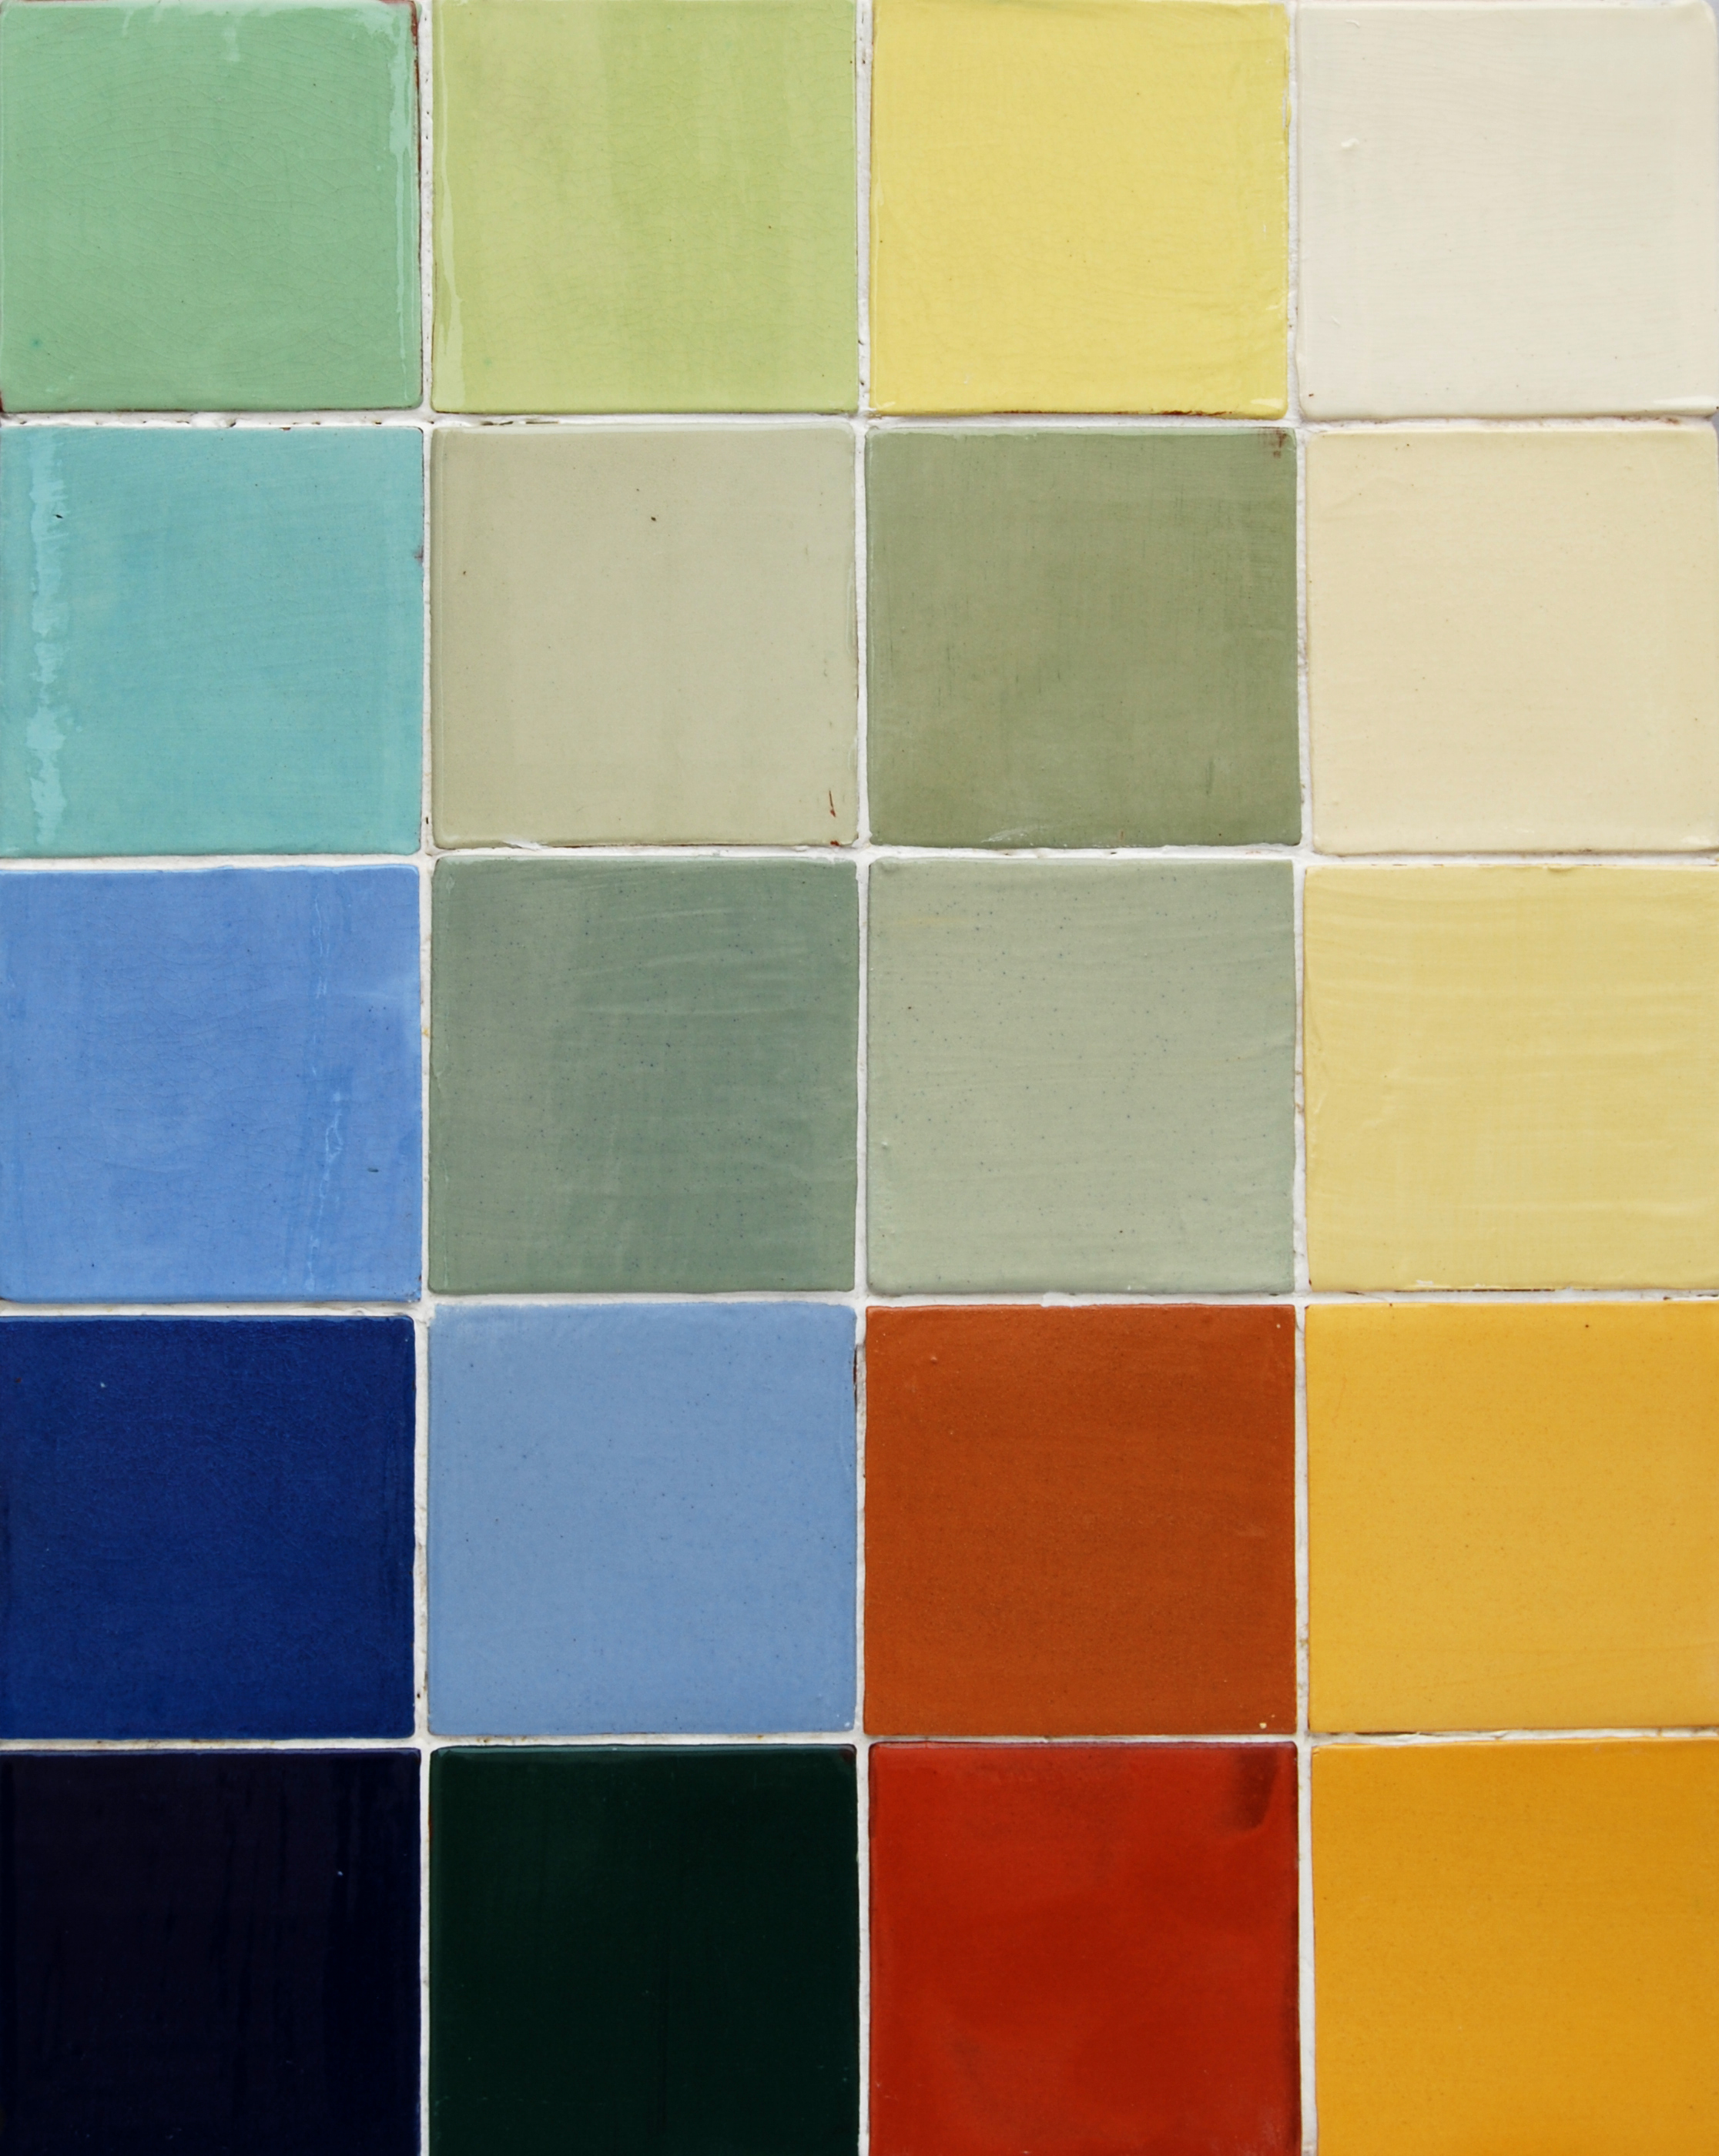 Plain Tiles - Our plain tiles can coordinate with the decors, or be used on their own. We have developed a range of unique, traditional clay-slip colours. Reading left to right:1st rowlagoon, apple, primrose, ivory 2nd rowazure, duck pond light, duck pond bright, cream.3rd rowmid blue, duck egg bright, duck egg light, primrose.4th rowindigo, delphinium, warm earth, light gold ochre.5th rowblack, spruce green, autumn red, dark ochre.